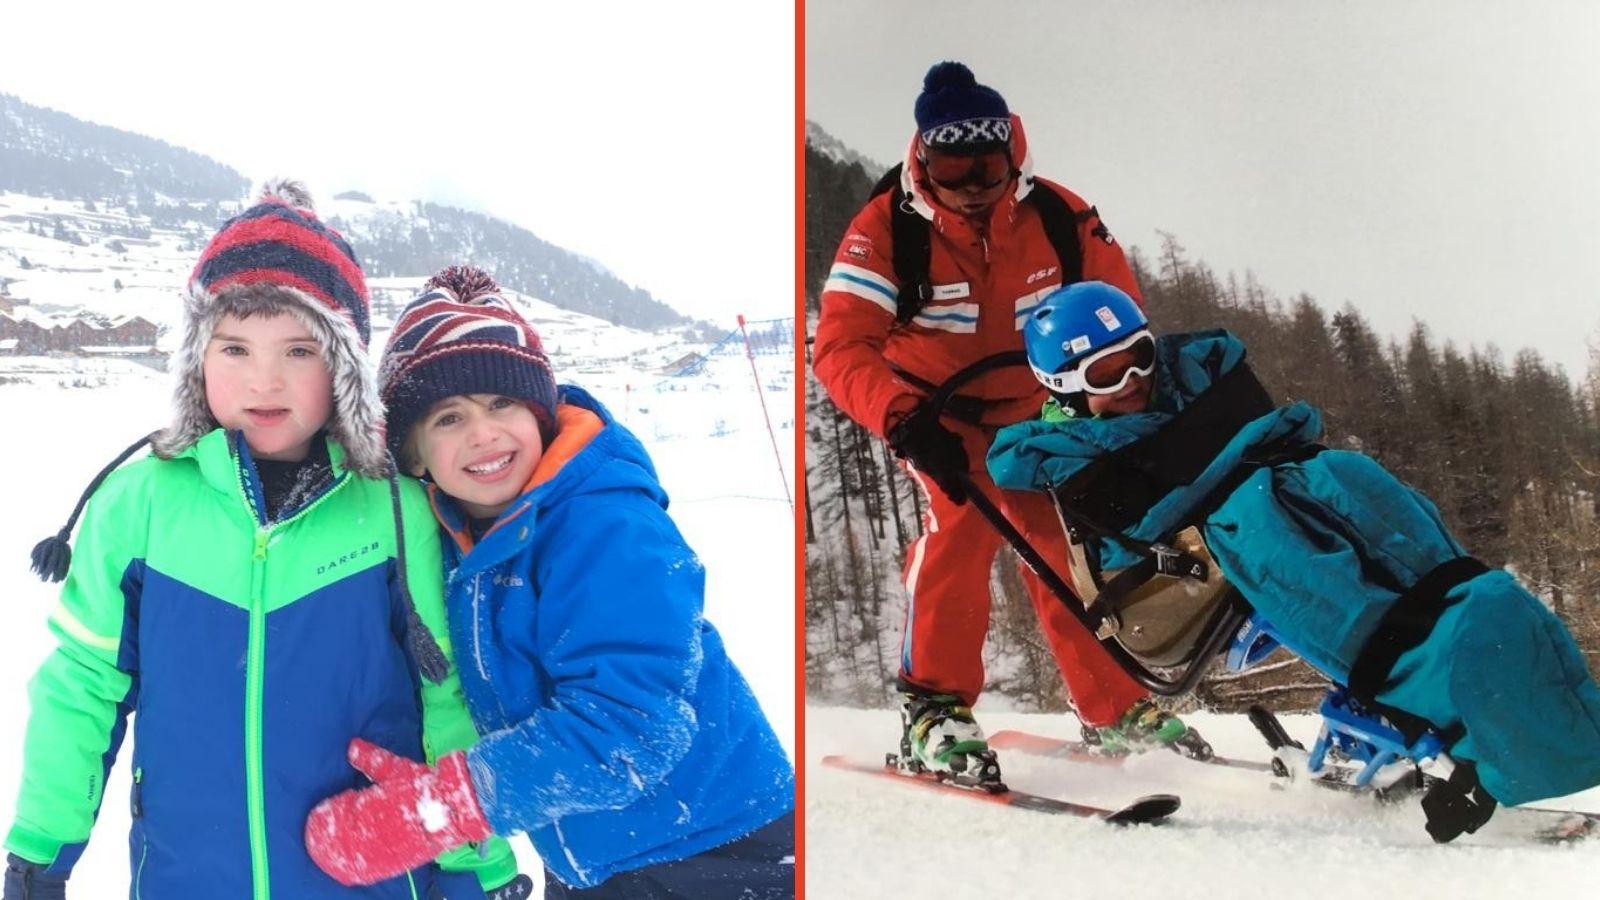 left - Ollie and brother Joe playing in the snow. right - Ollie being guided round the mountain by instructor Thomas